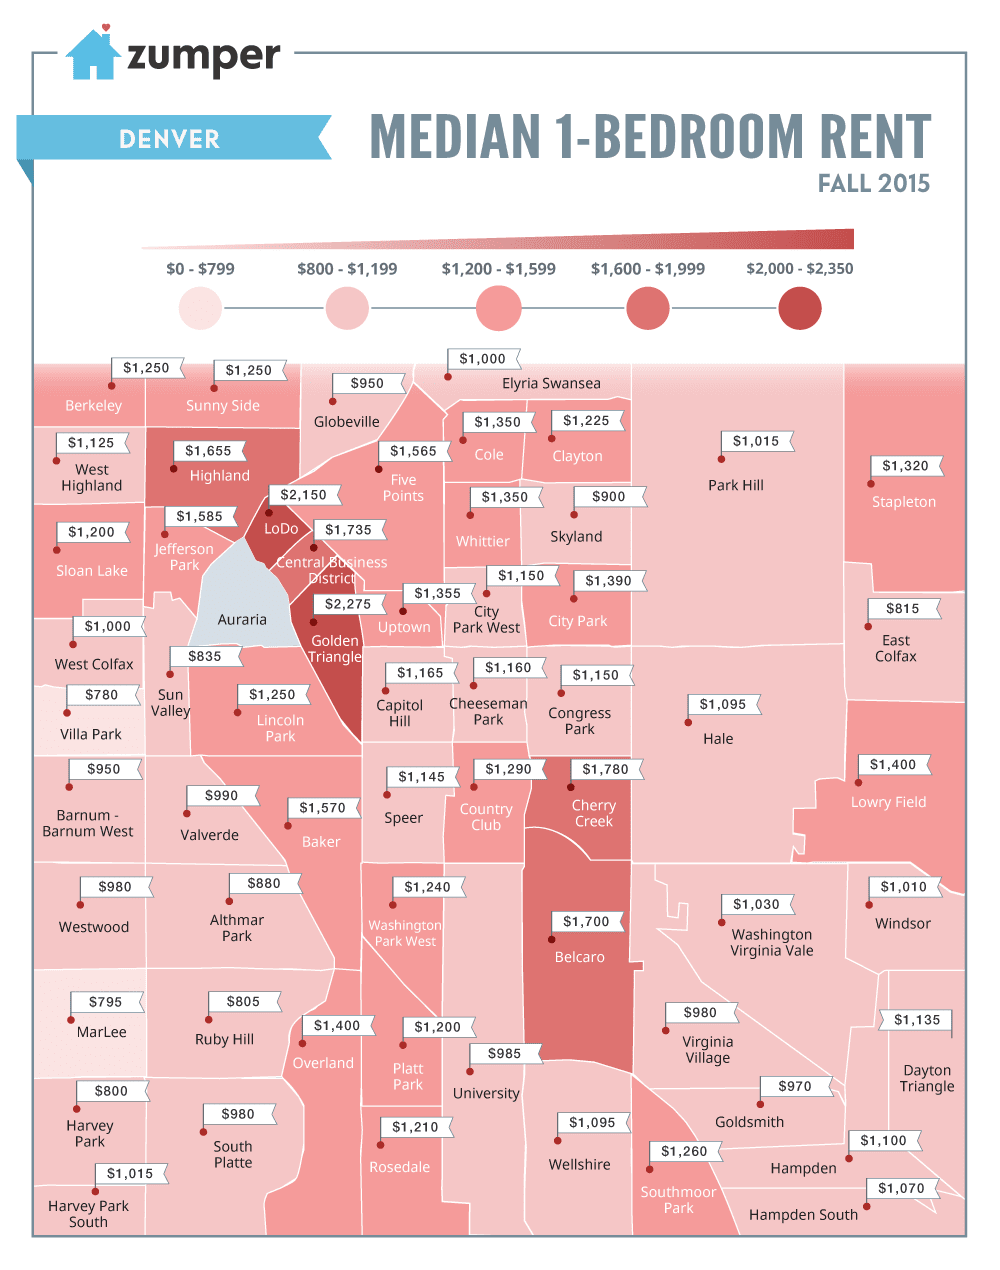 Median one-bedroom rents for Denver neighborhoods